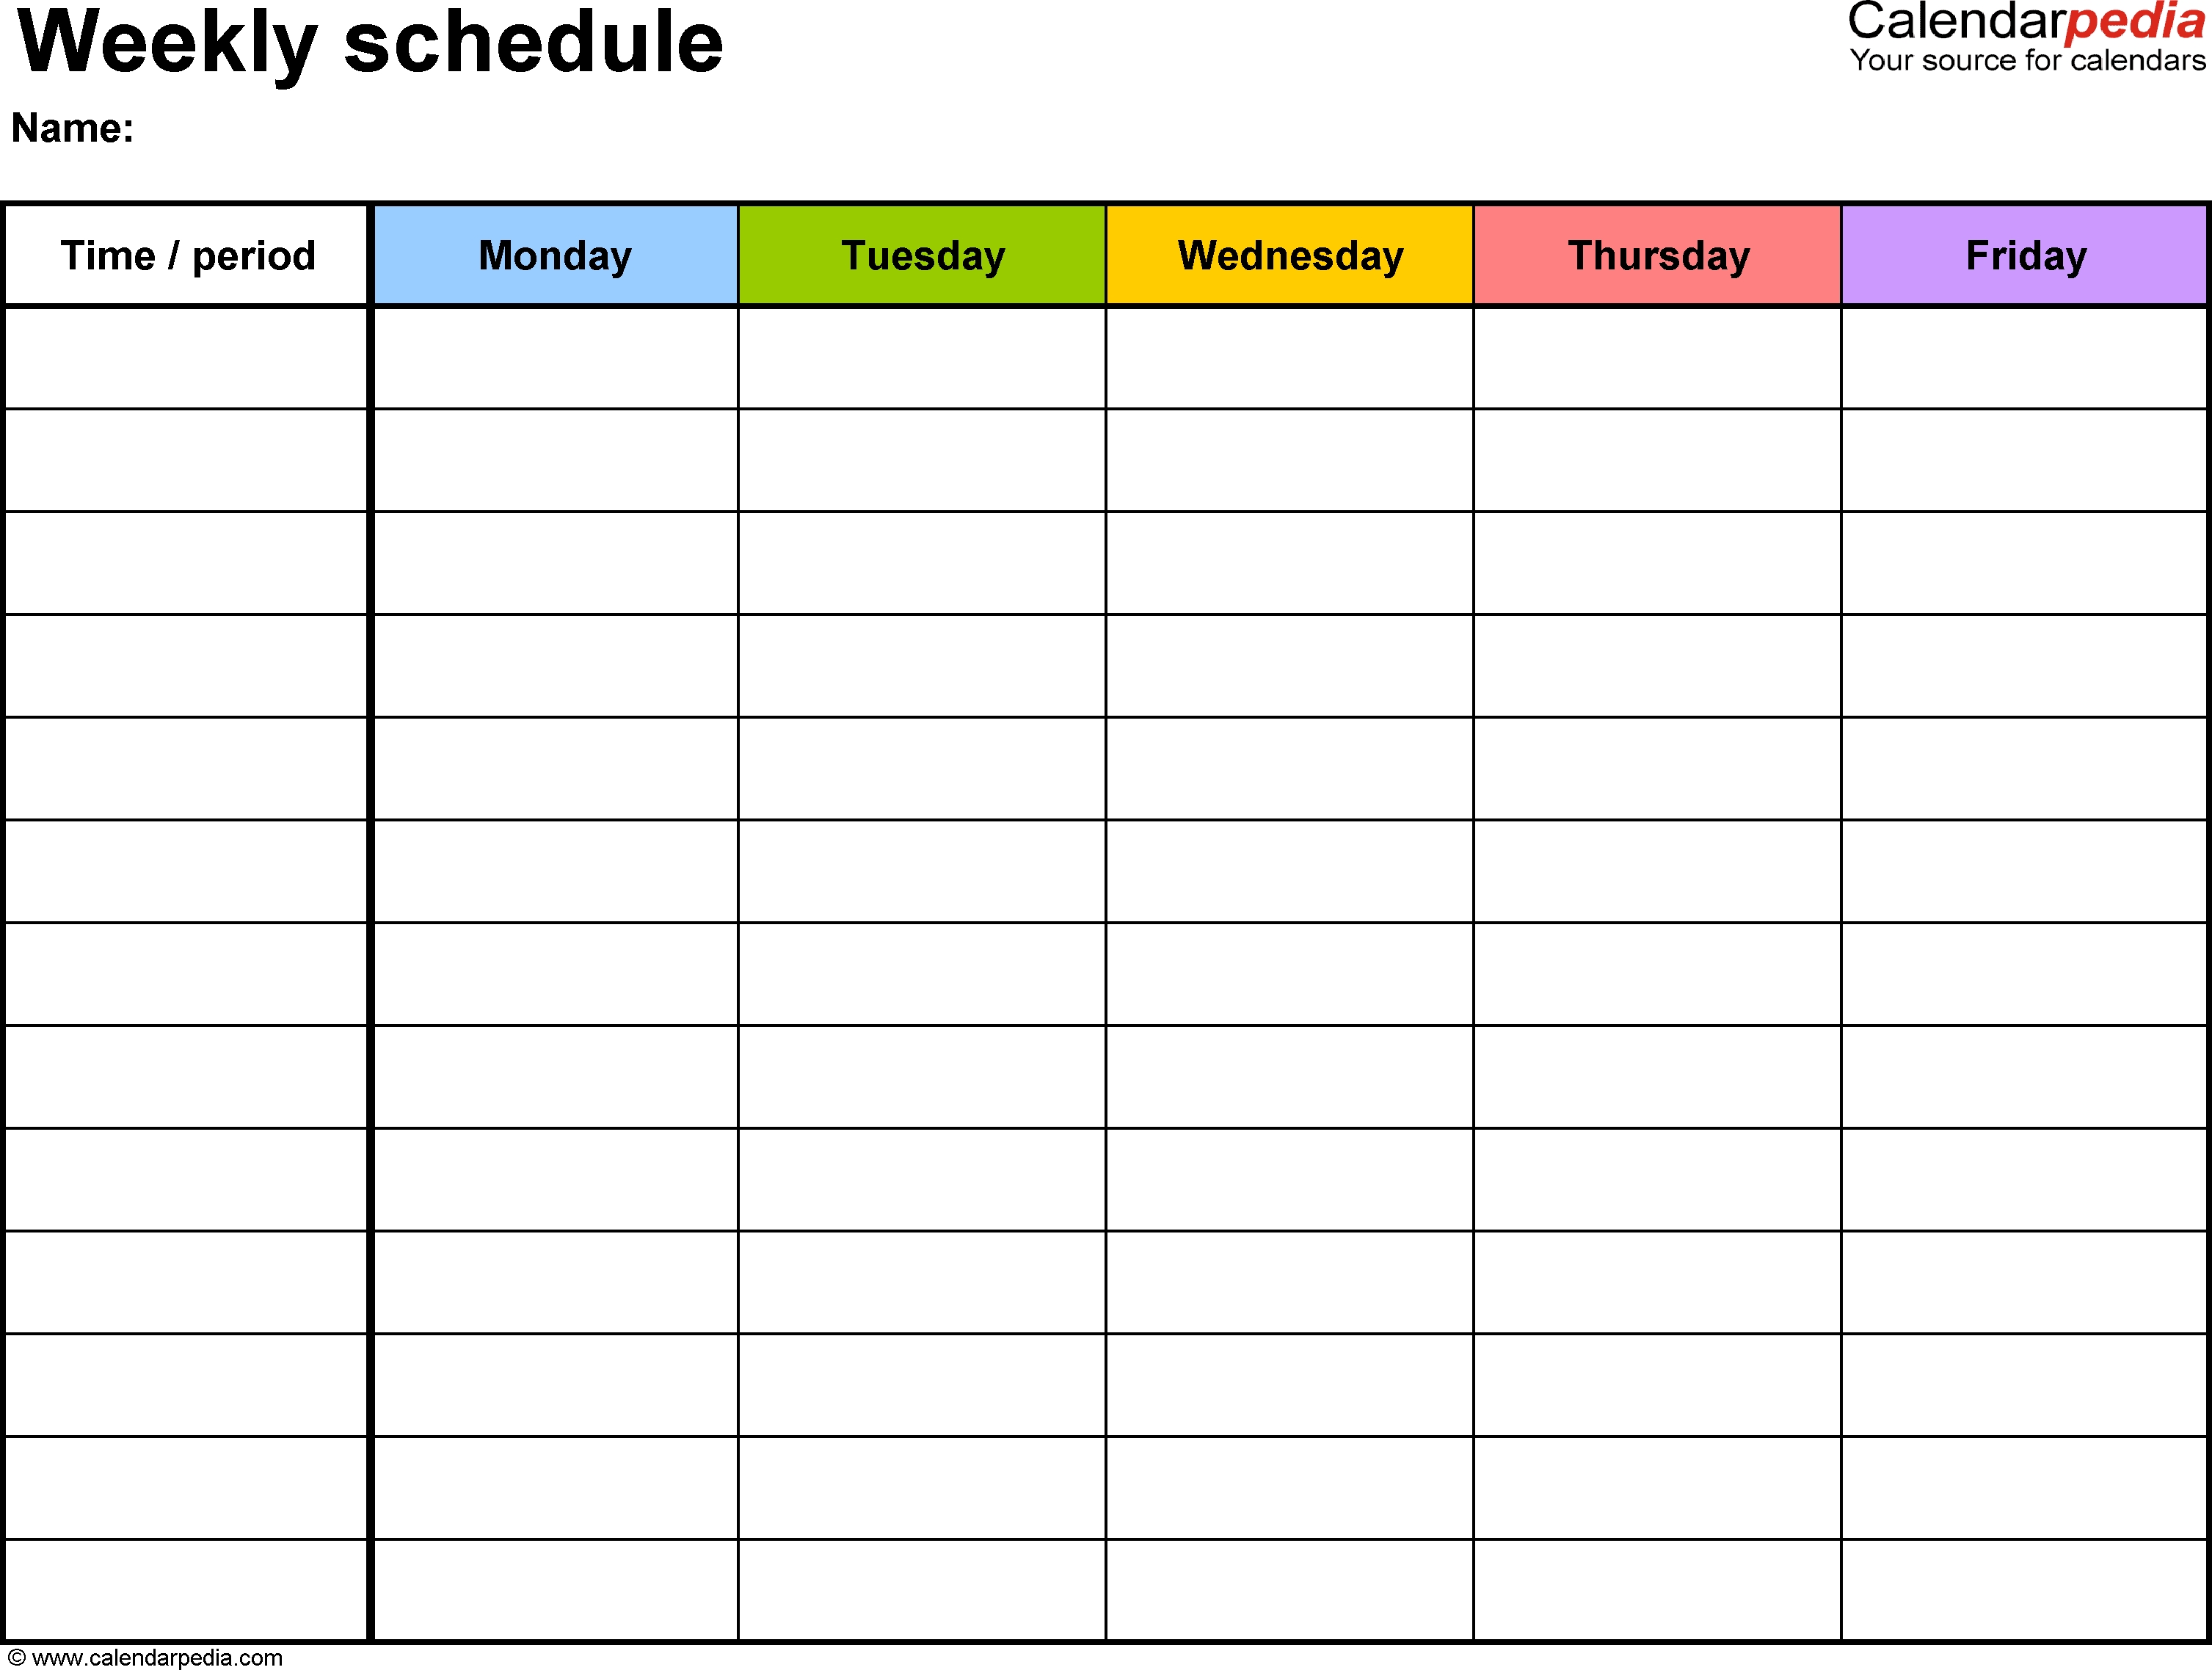 Free Weekly Schedule Templates For Word - 18 Templates intended for Monday - Sunday Weekly Schedule